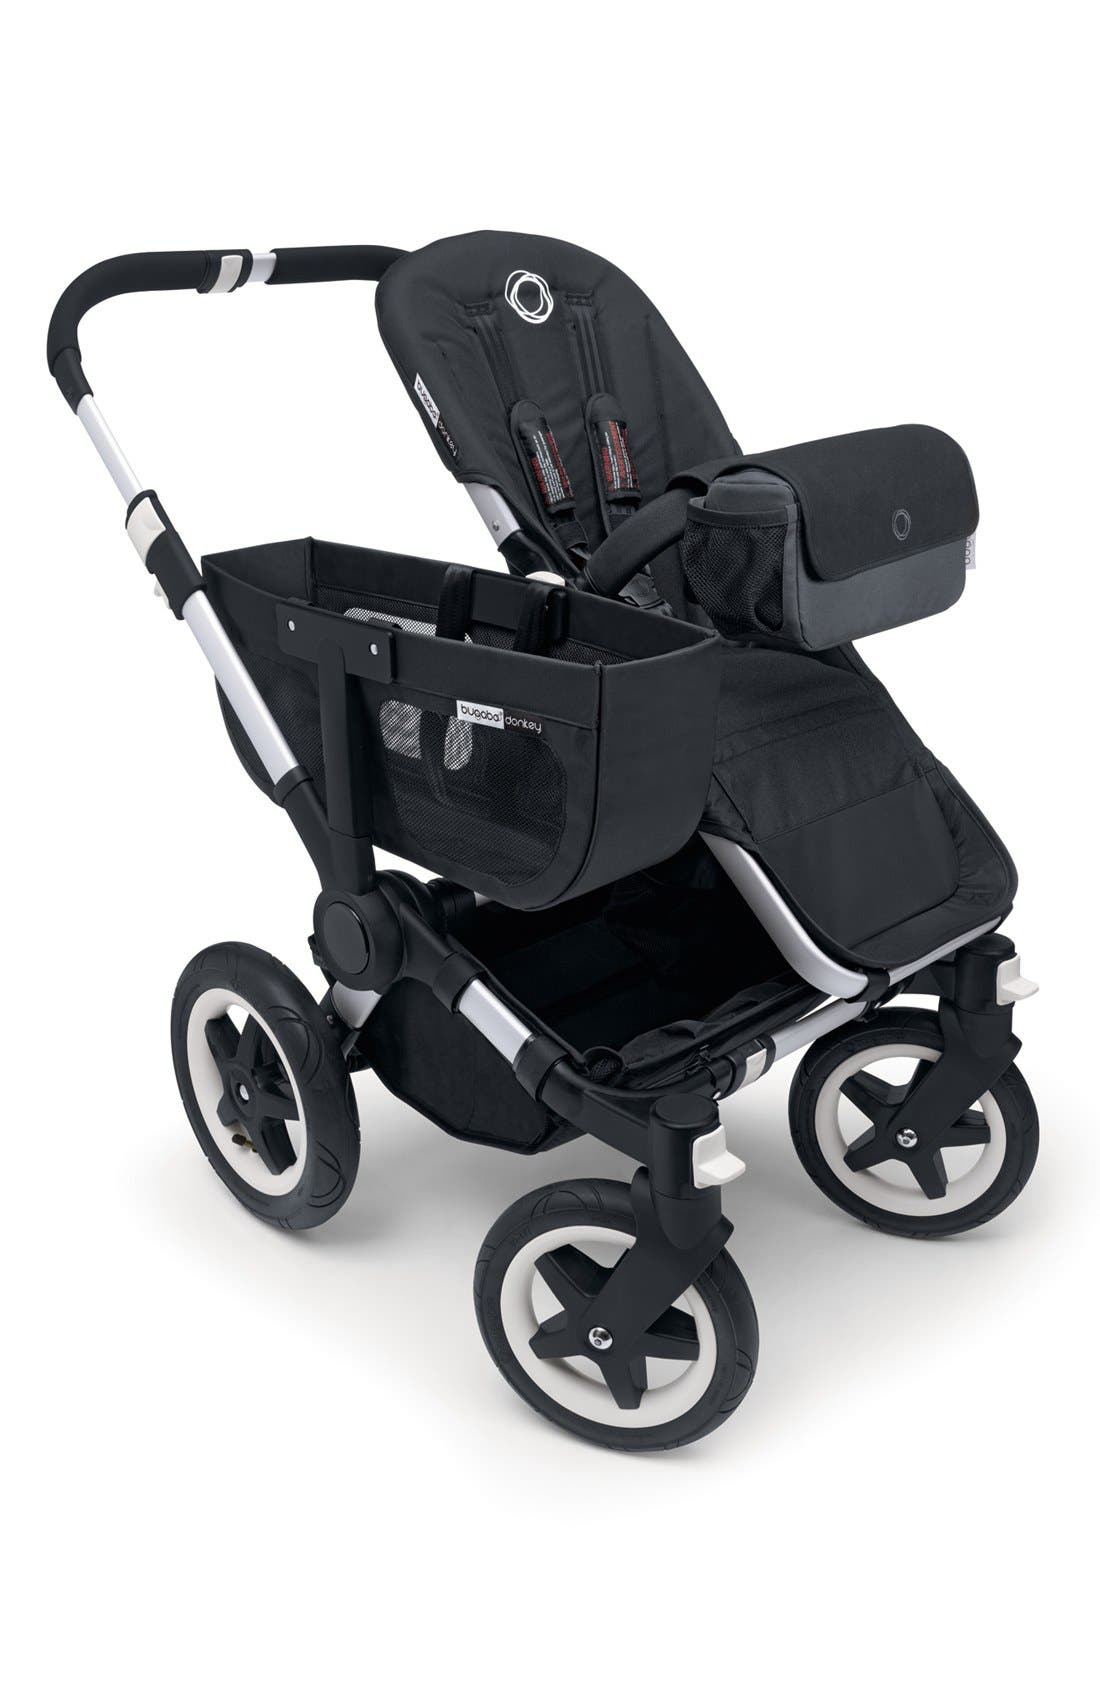 Alternate Image 1 Selected - Bugaboo 'Donkey' Stroller - Aluminum Frame